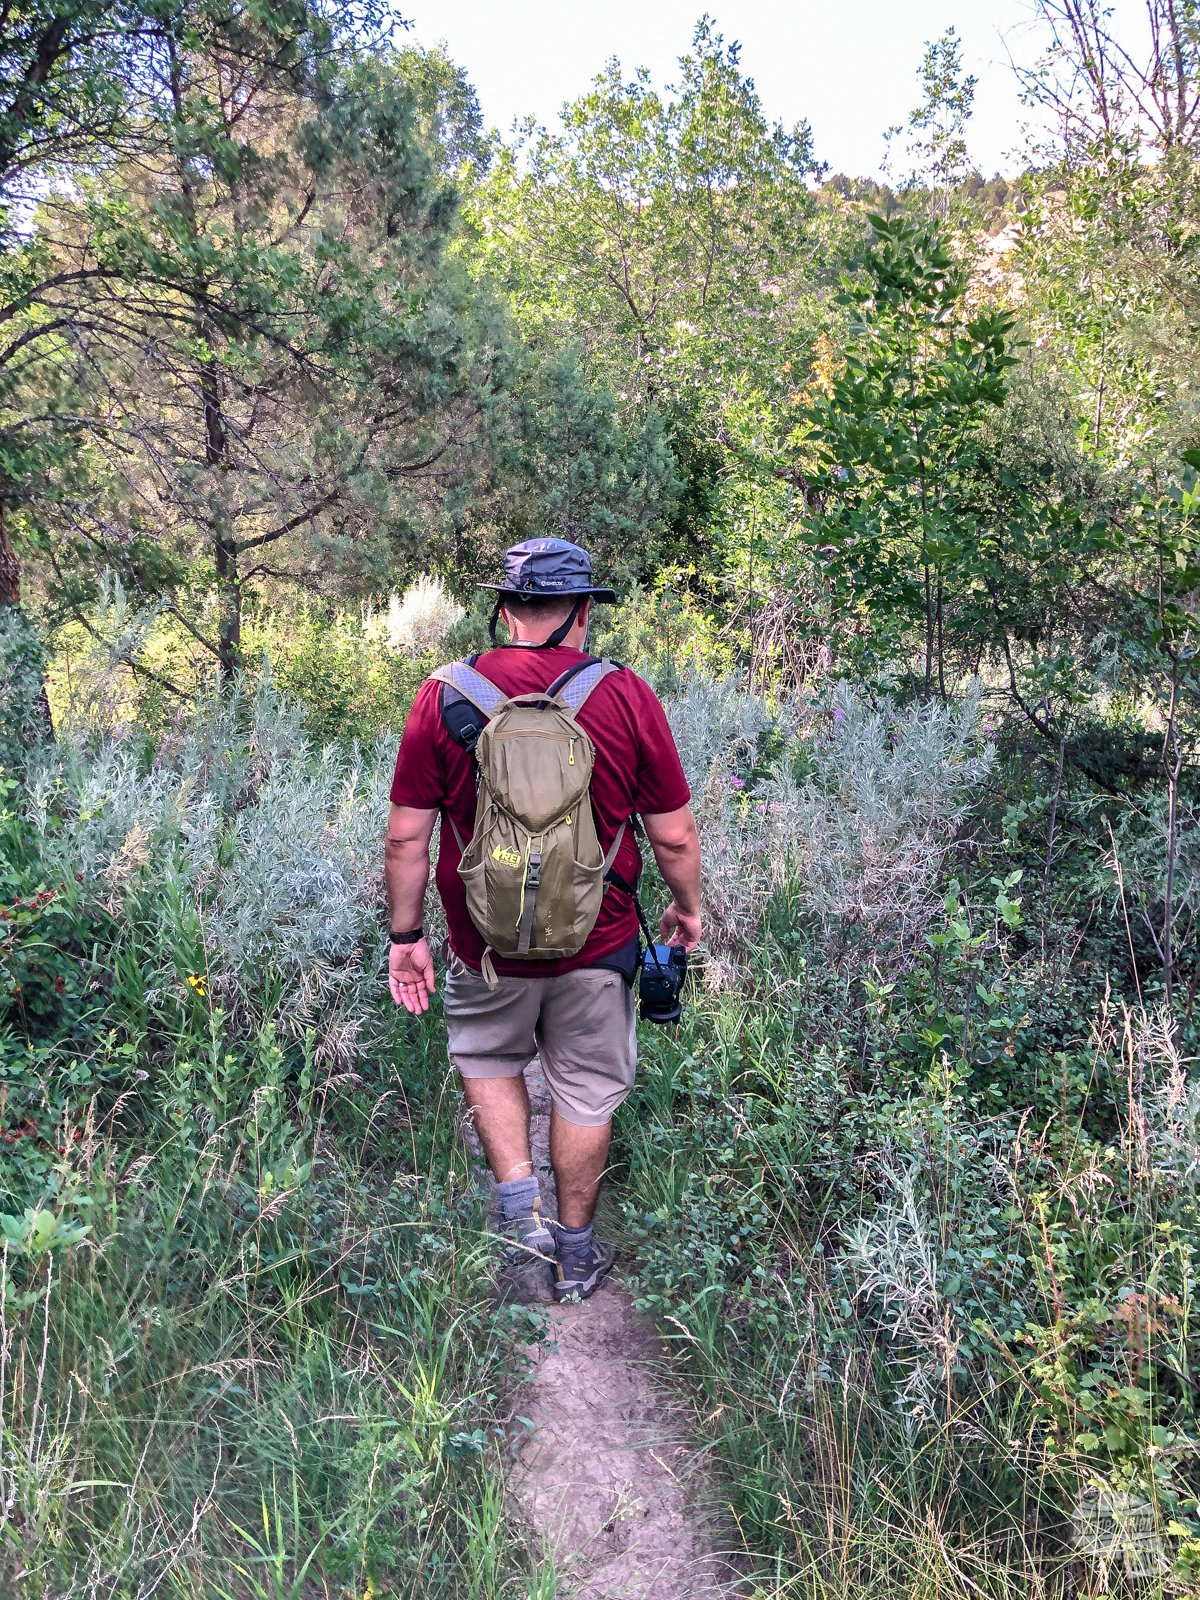 Grant hiking through thicker brush on the Caprock Coulee Trail.